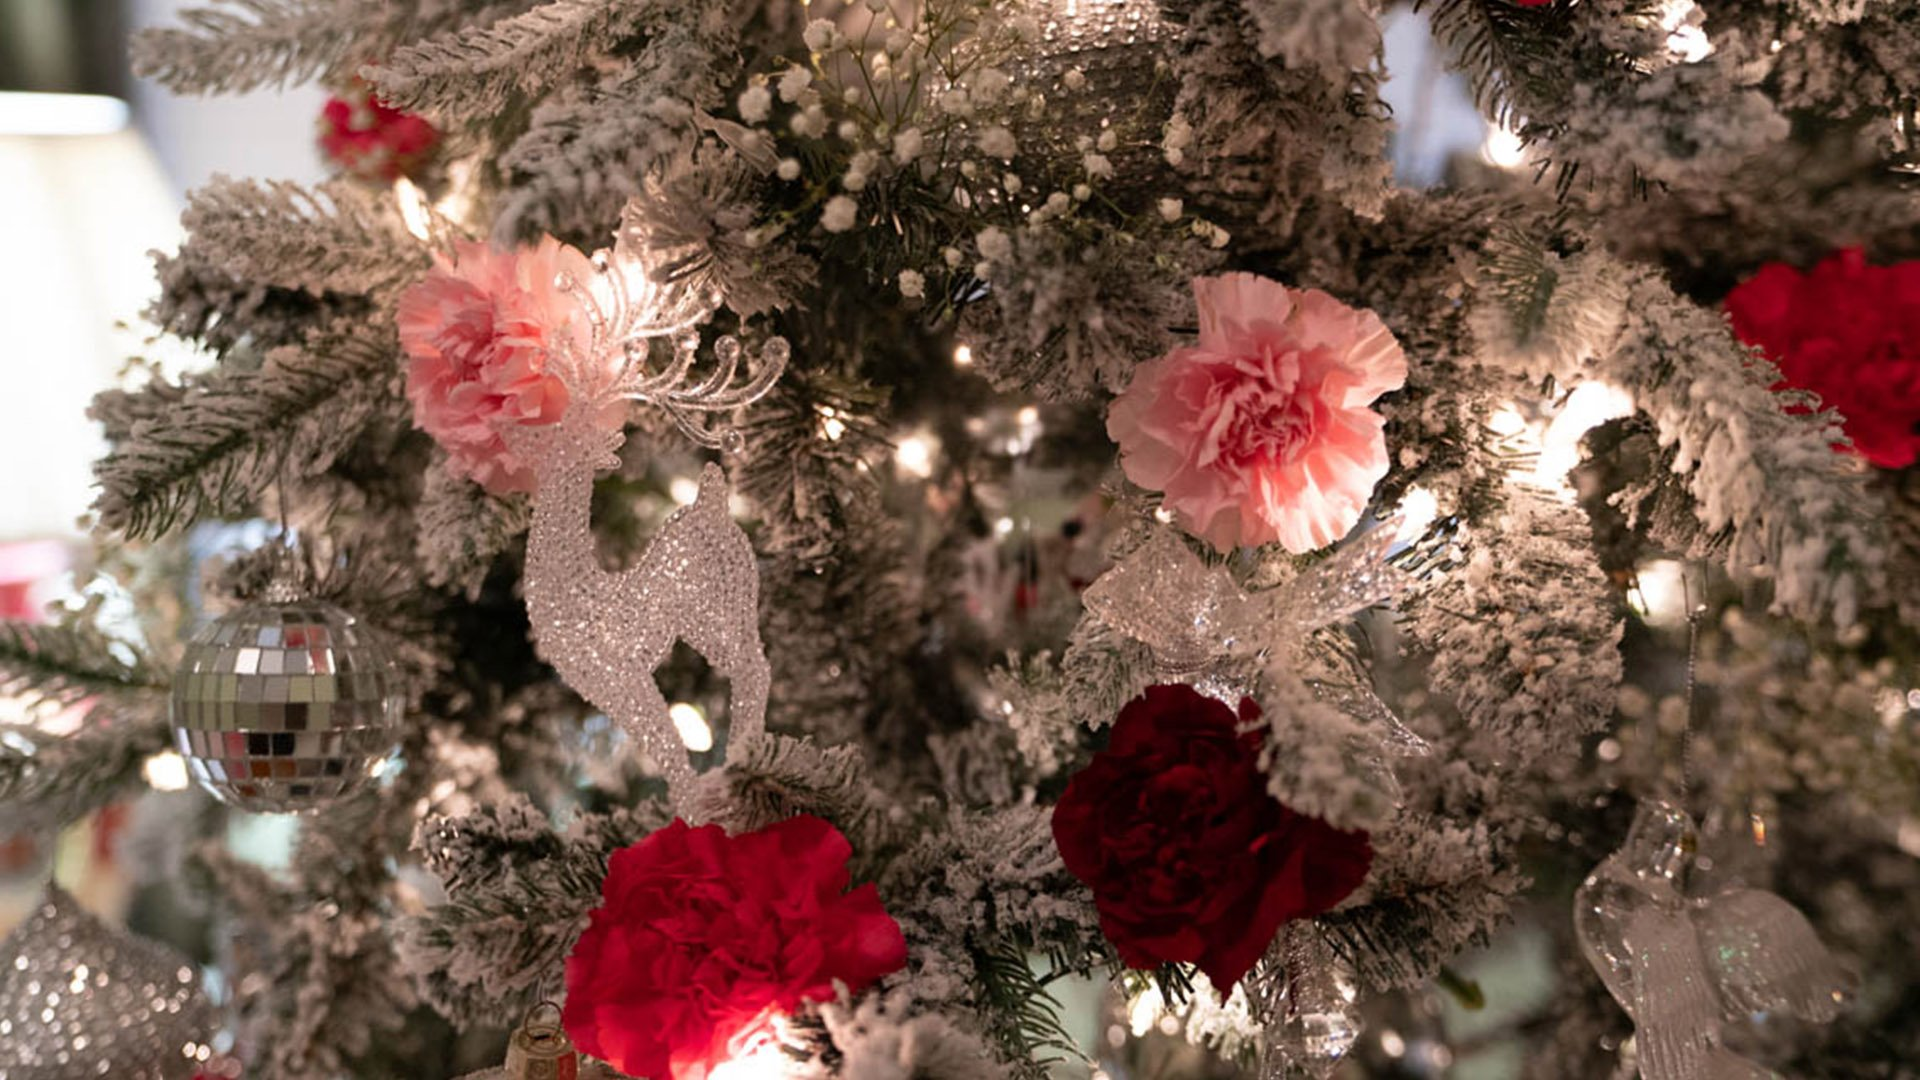 https://spatulamedia.ca/wp-content/uploads/2019/05/homes-for-the-holidays-art-deco-home-tree-detail.jpg